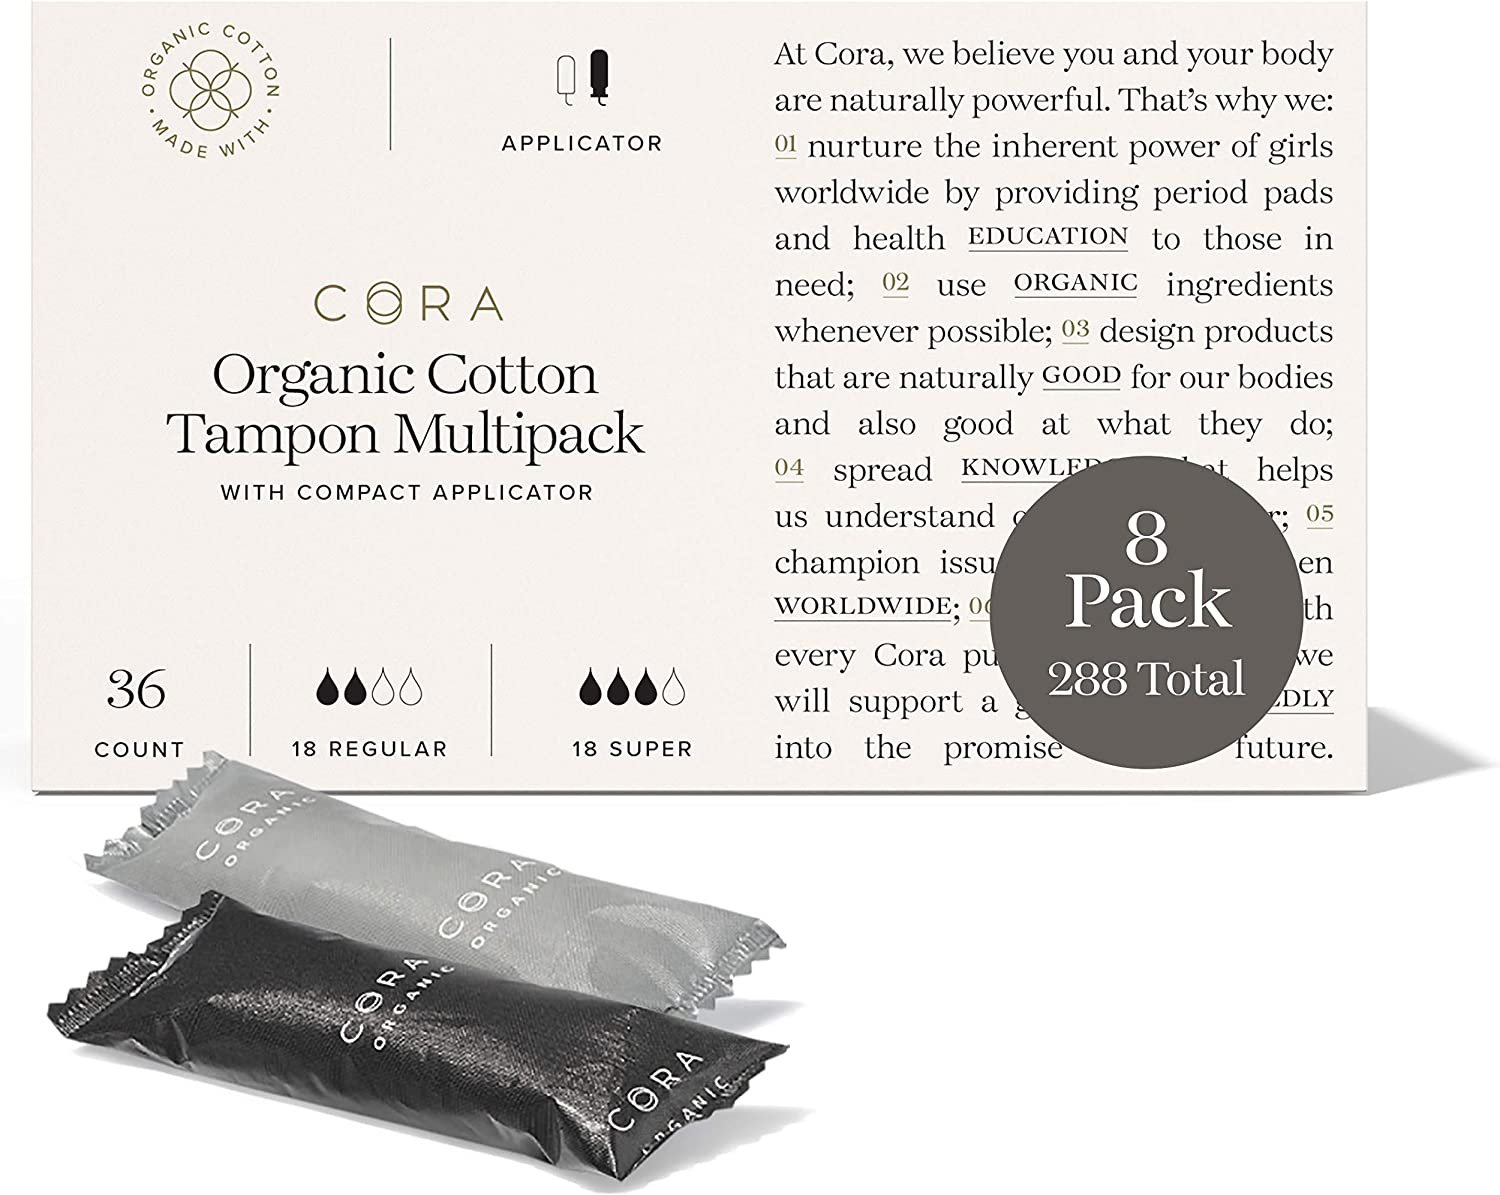 Cora Organic Cotton Tampons with BPA-Free Plastic Compact Applicator; Chlorine & Toxin Free - Variety Pack - Regular/Super (288)